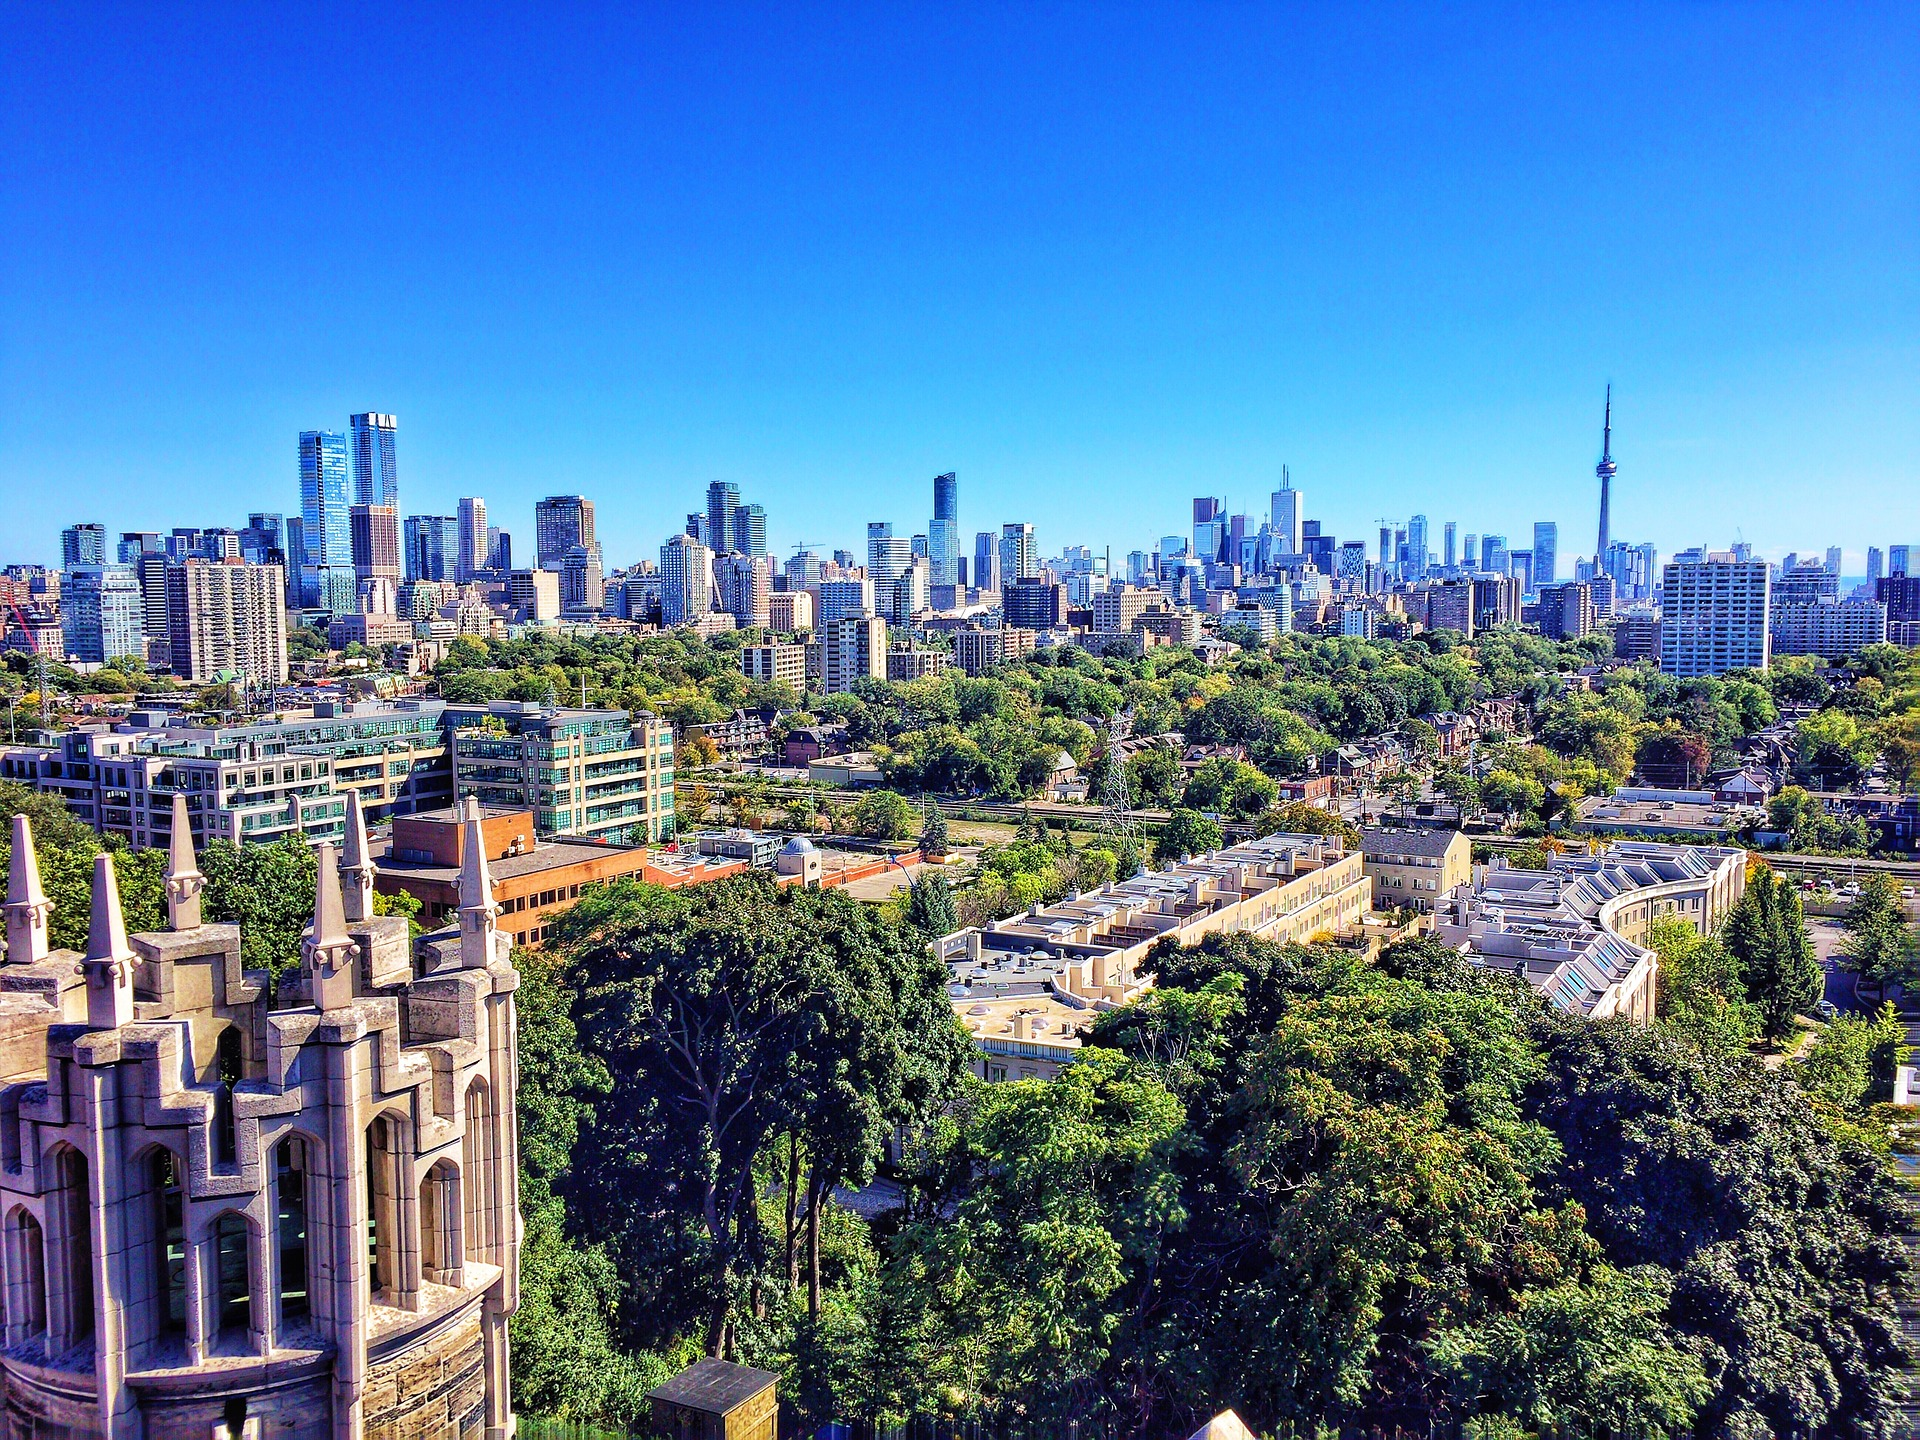 Photo of Toronto skyline from far away, showing CN Tower and Wins Lai Best Toronto Real Estate Agents.